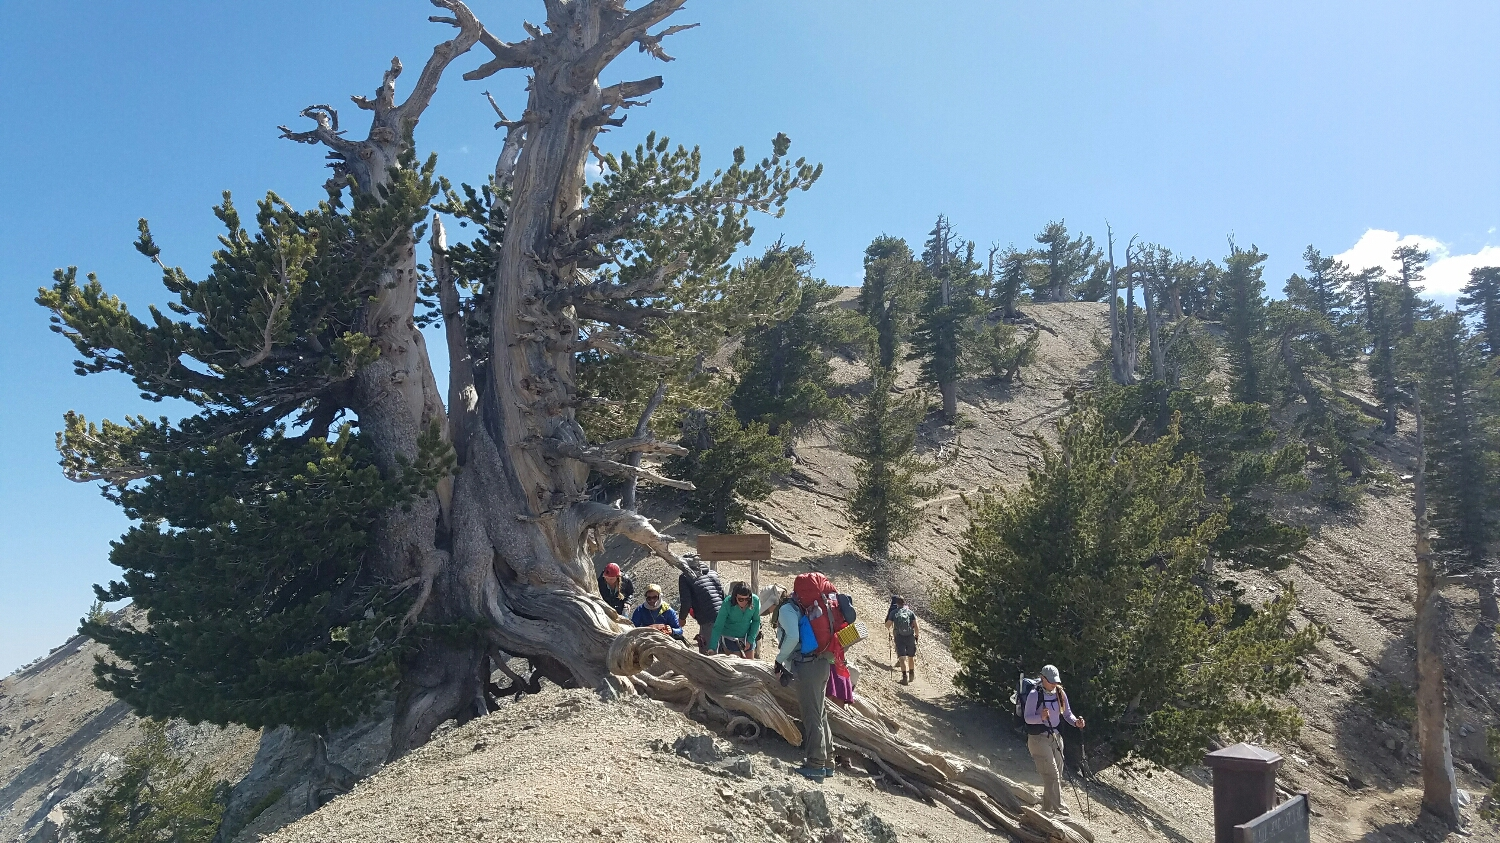 A 1,500 year old pine tree